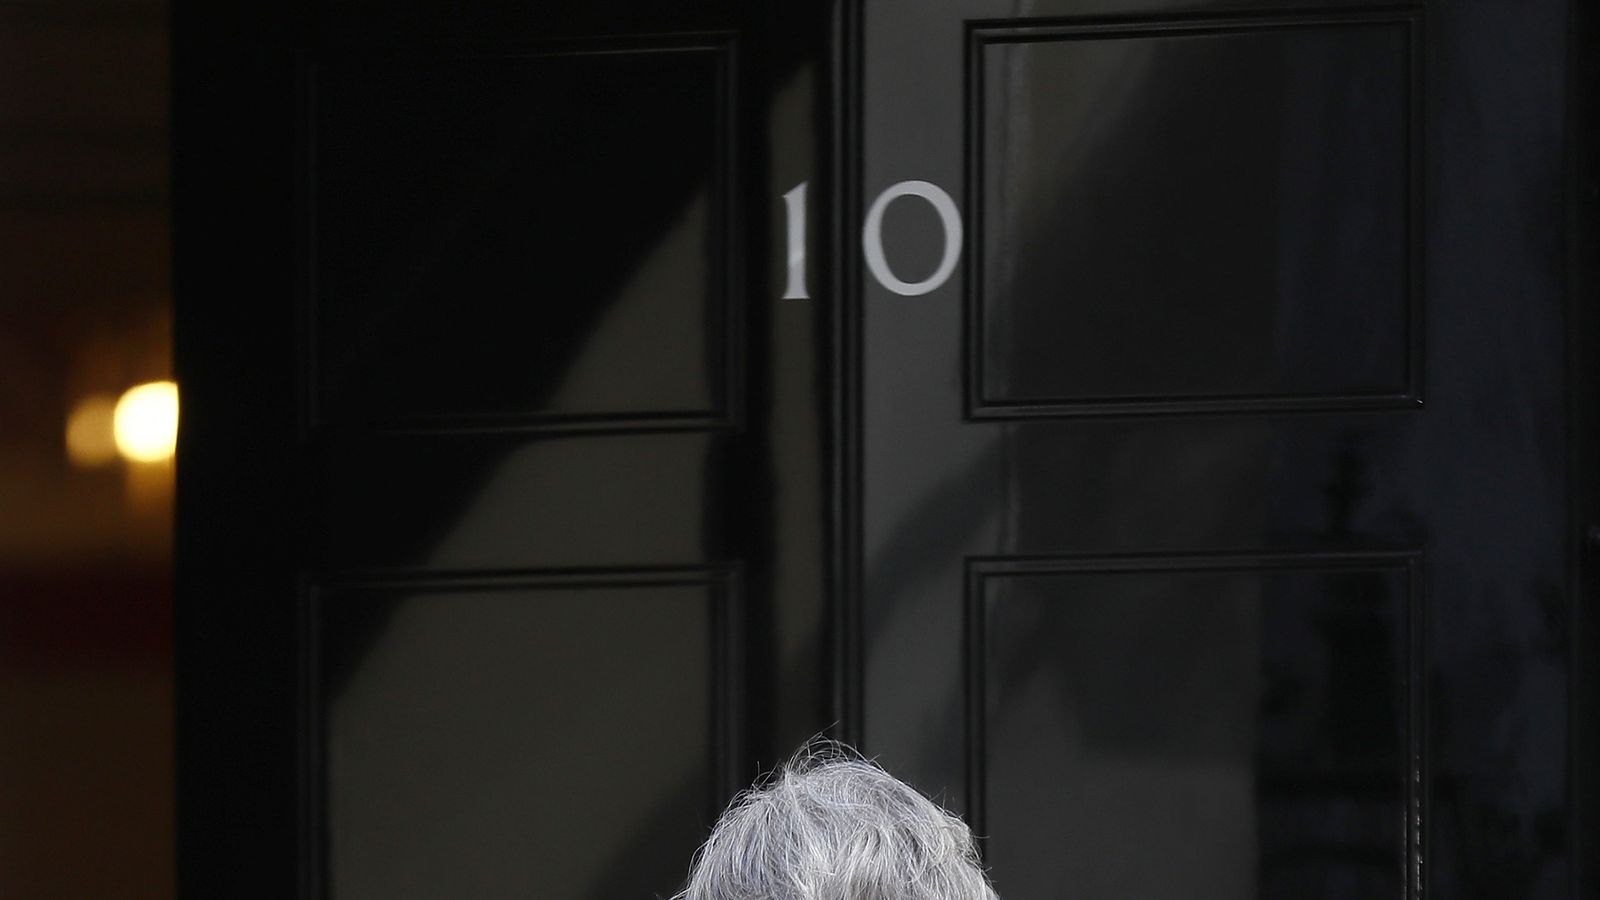 Theresa May returns to 10 Downing Street after calling for a snap General Election